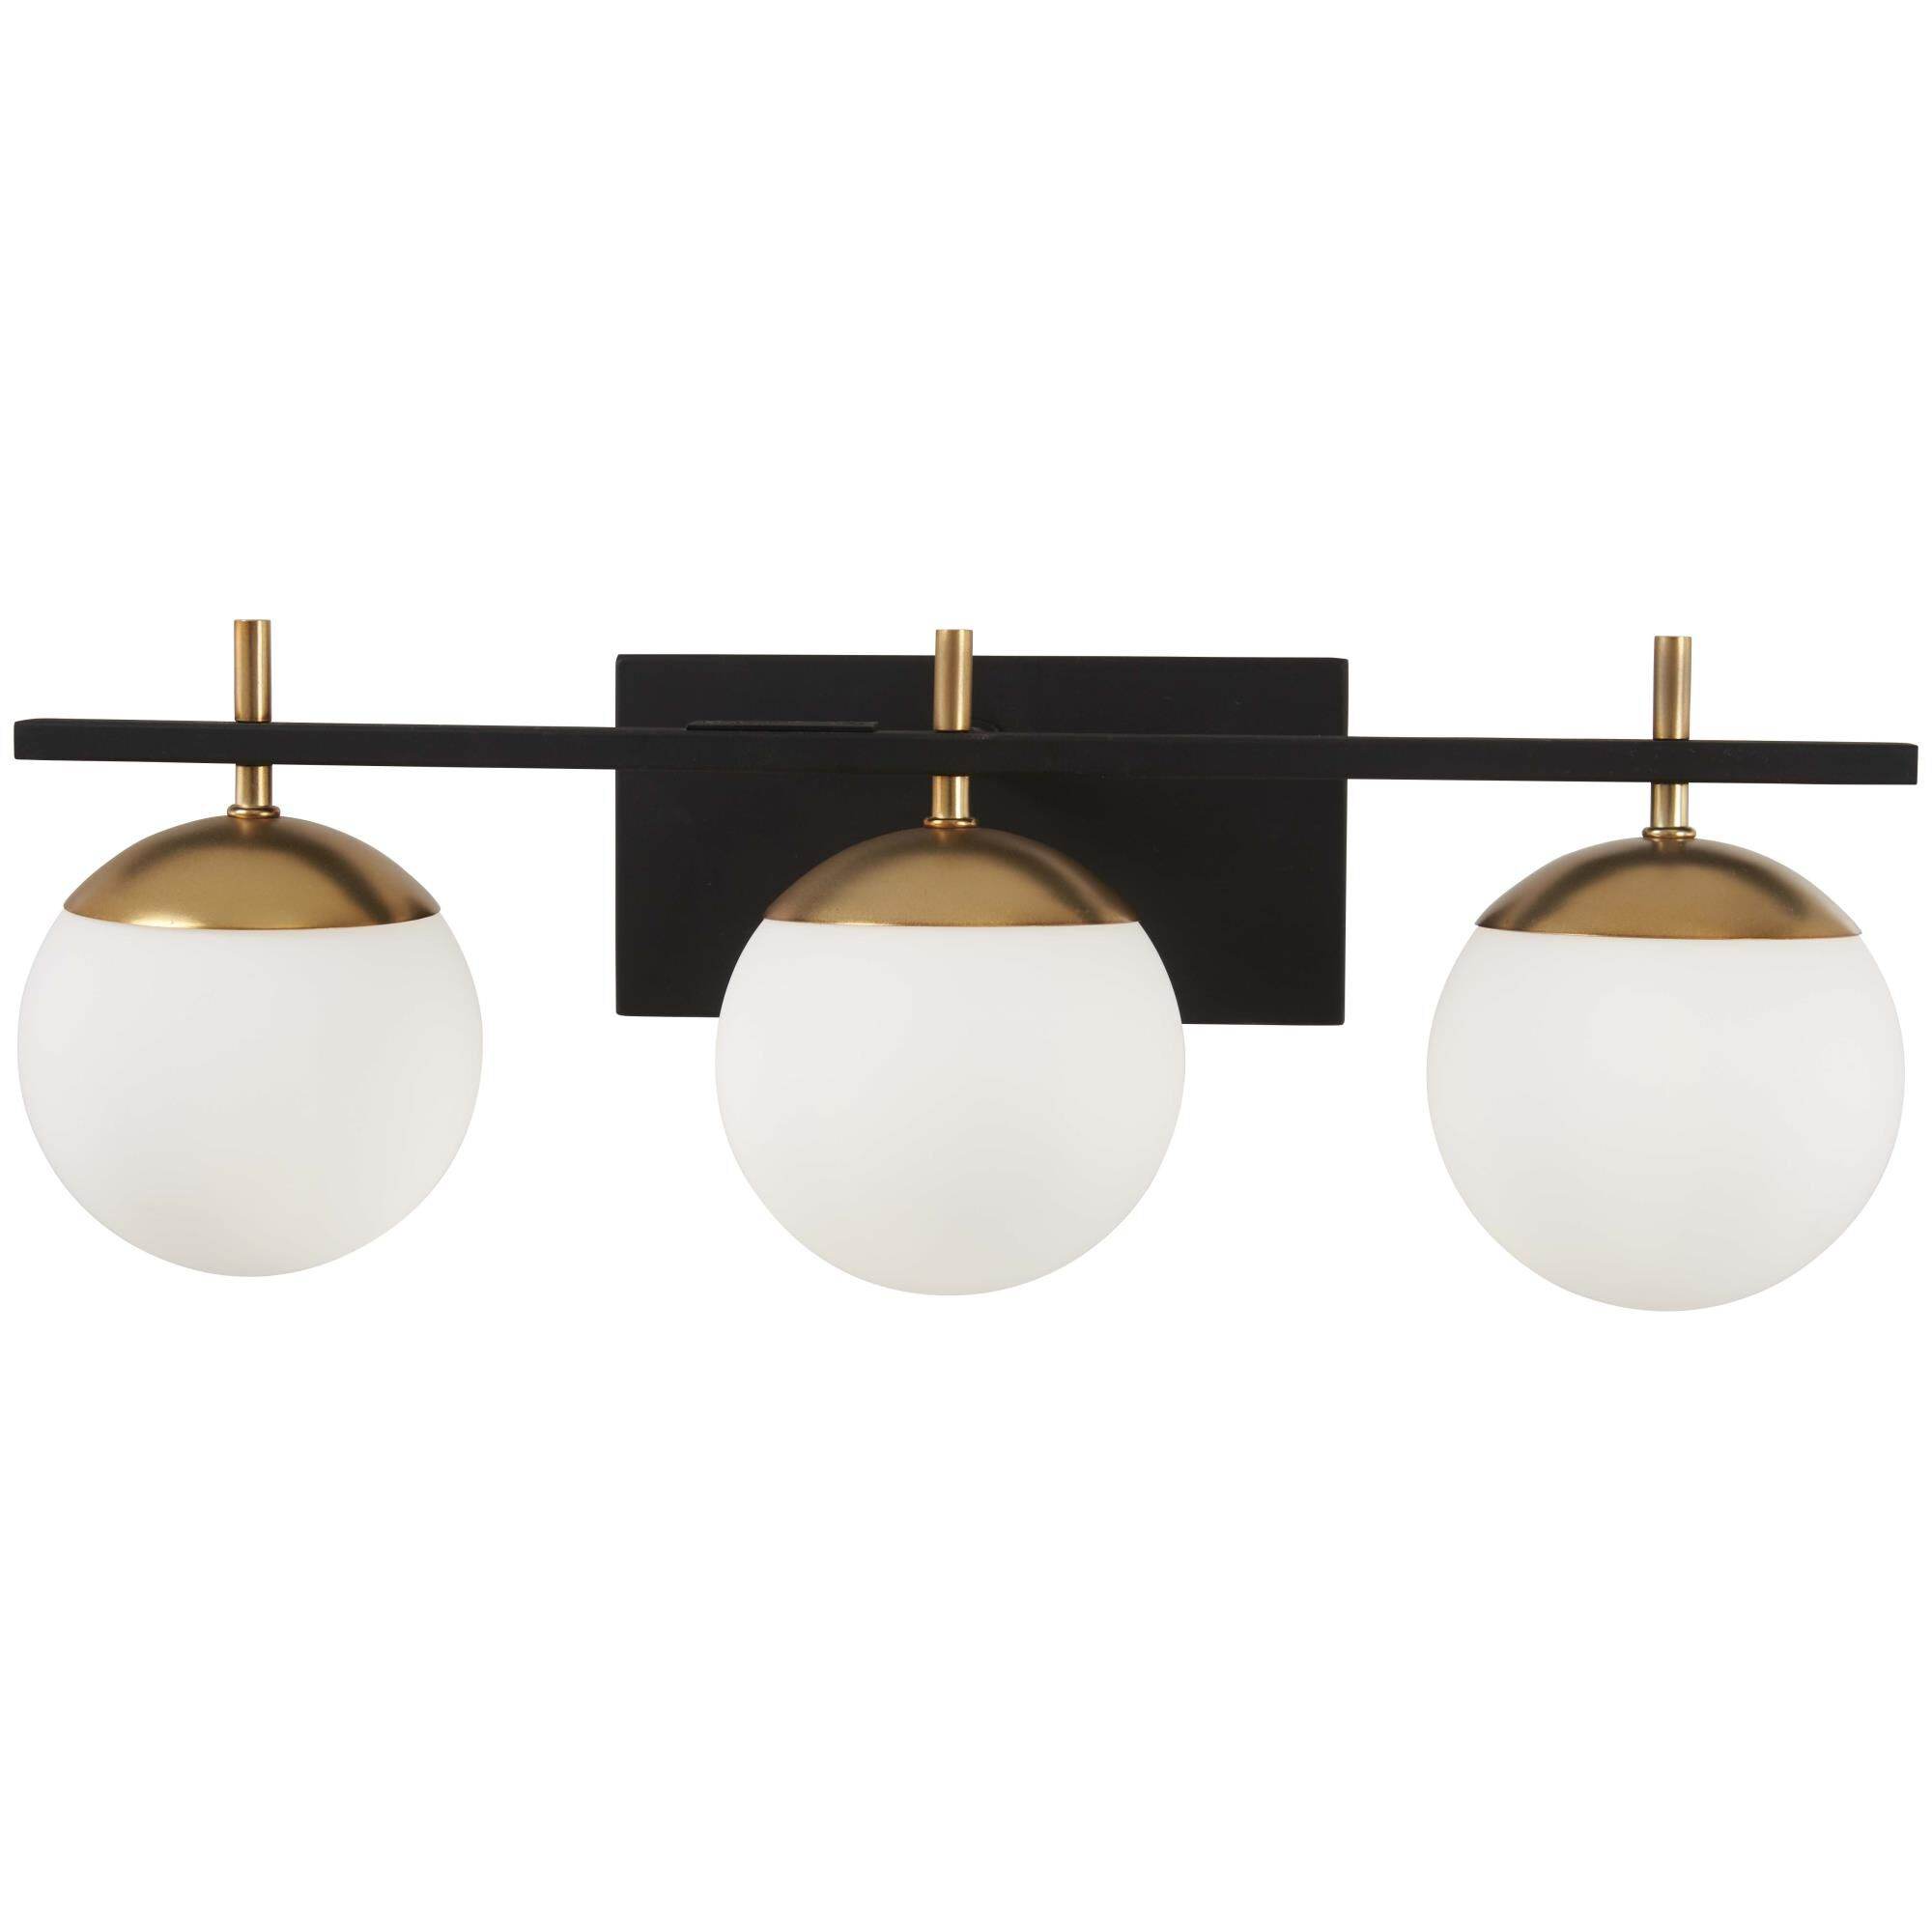 Kovacs Alluria 24 Inch 3 Light Bath Vanity Light Alluria - P1353-618 - Transitional